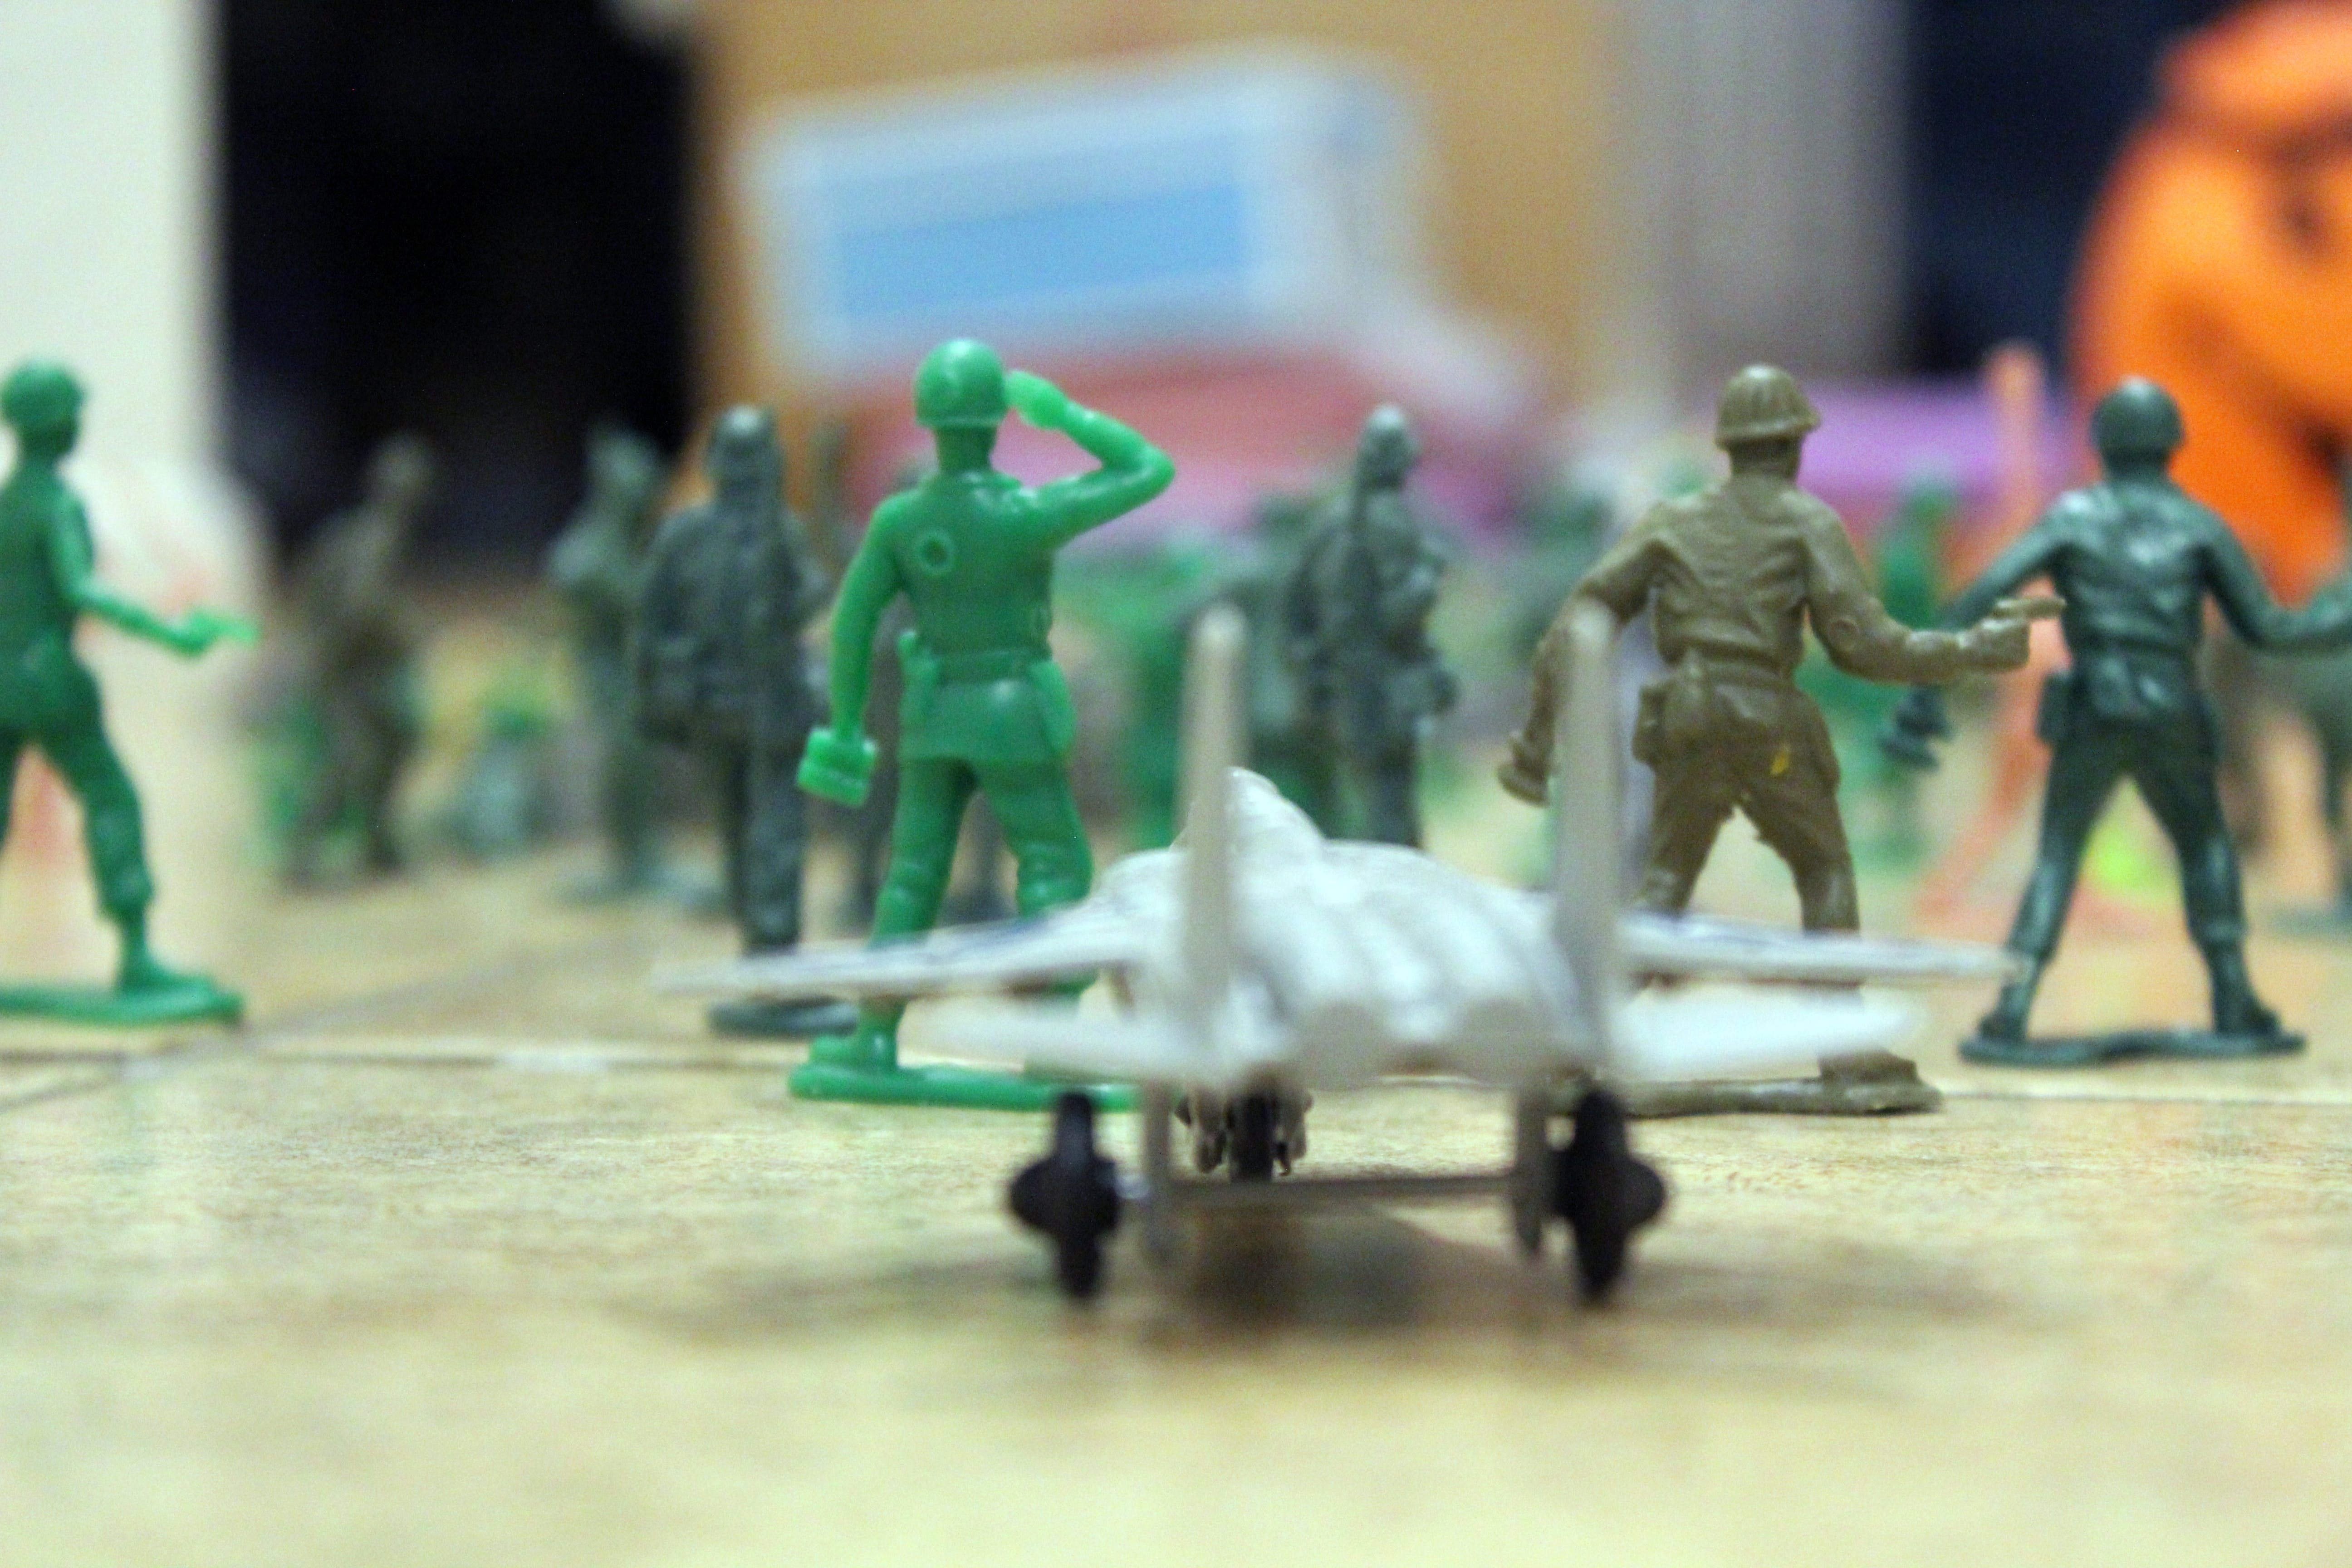 Free stock photo of soldiers, toys